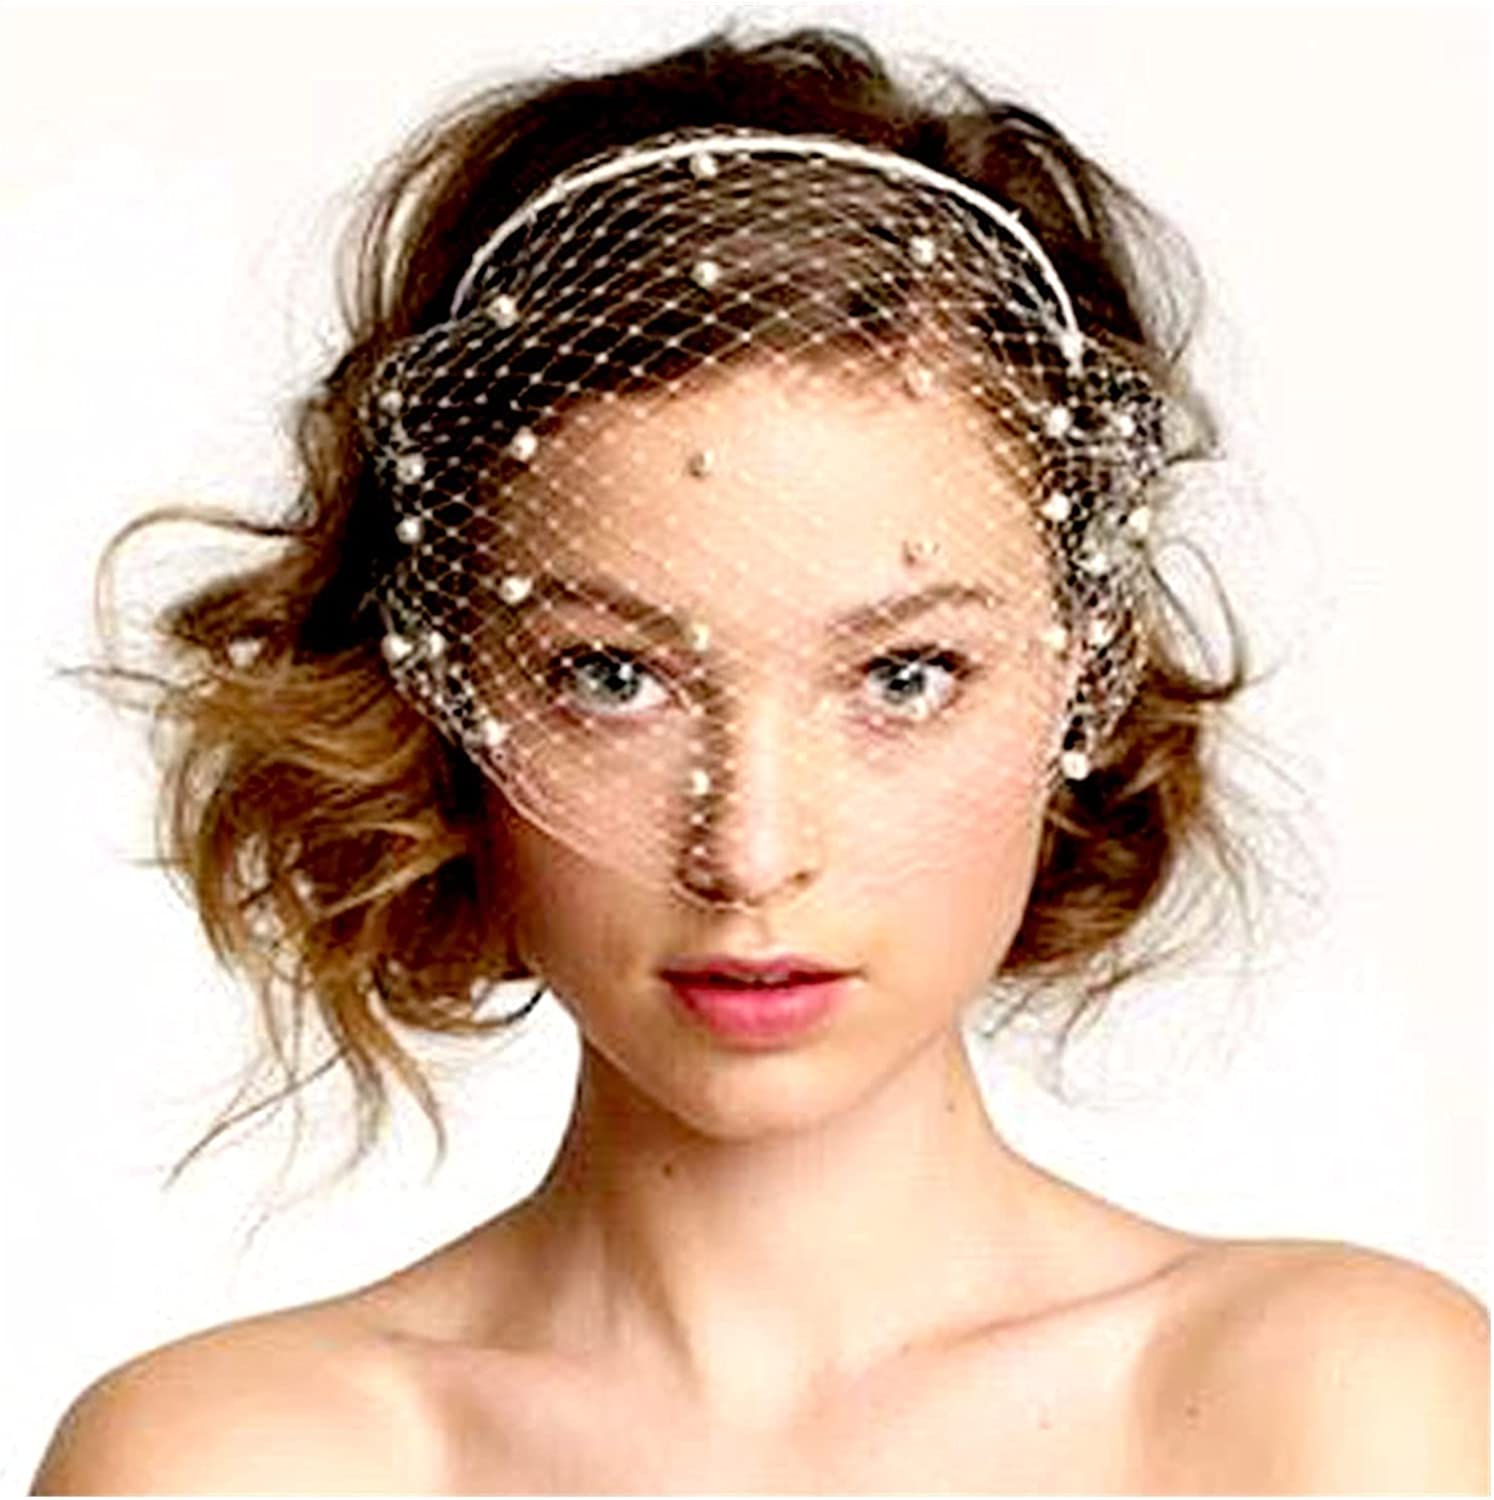 HAQTXI Bridal Crystal Birdcage Black Face Net Mask Hair Jewelry Accessories Veils Charming Wedding Fascinators with Comb for Women and Girls (Color : 4-White- Pearls)